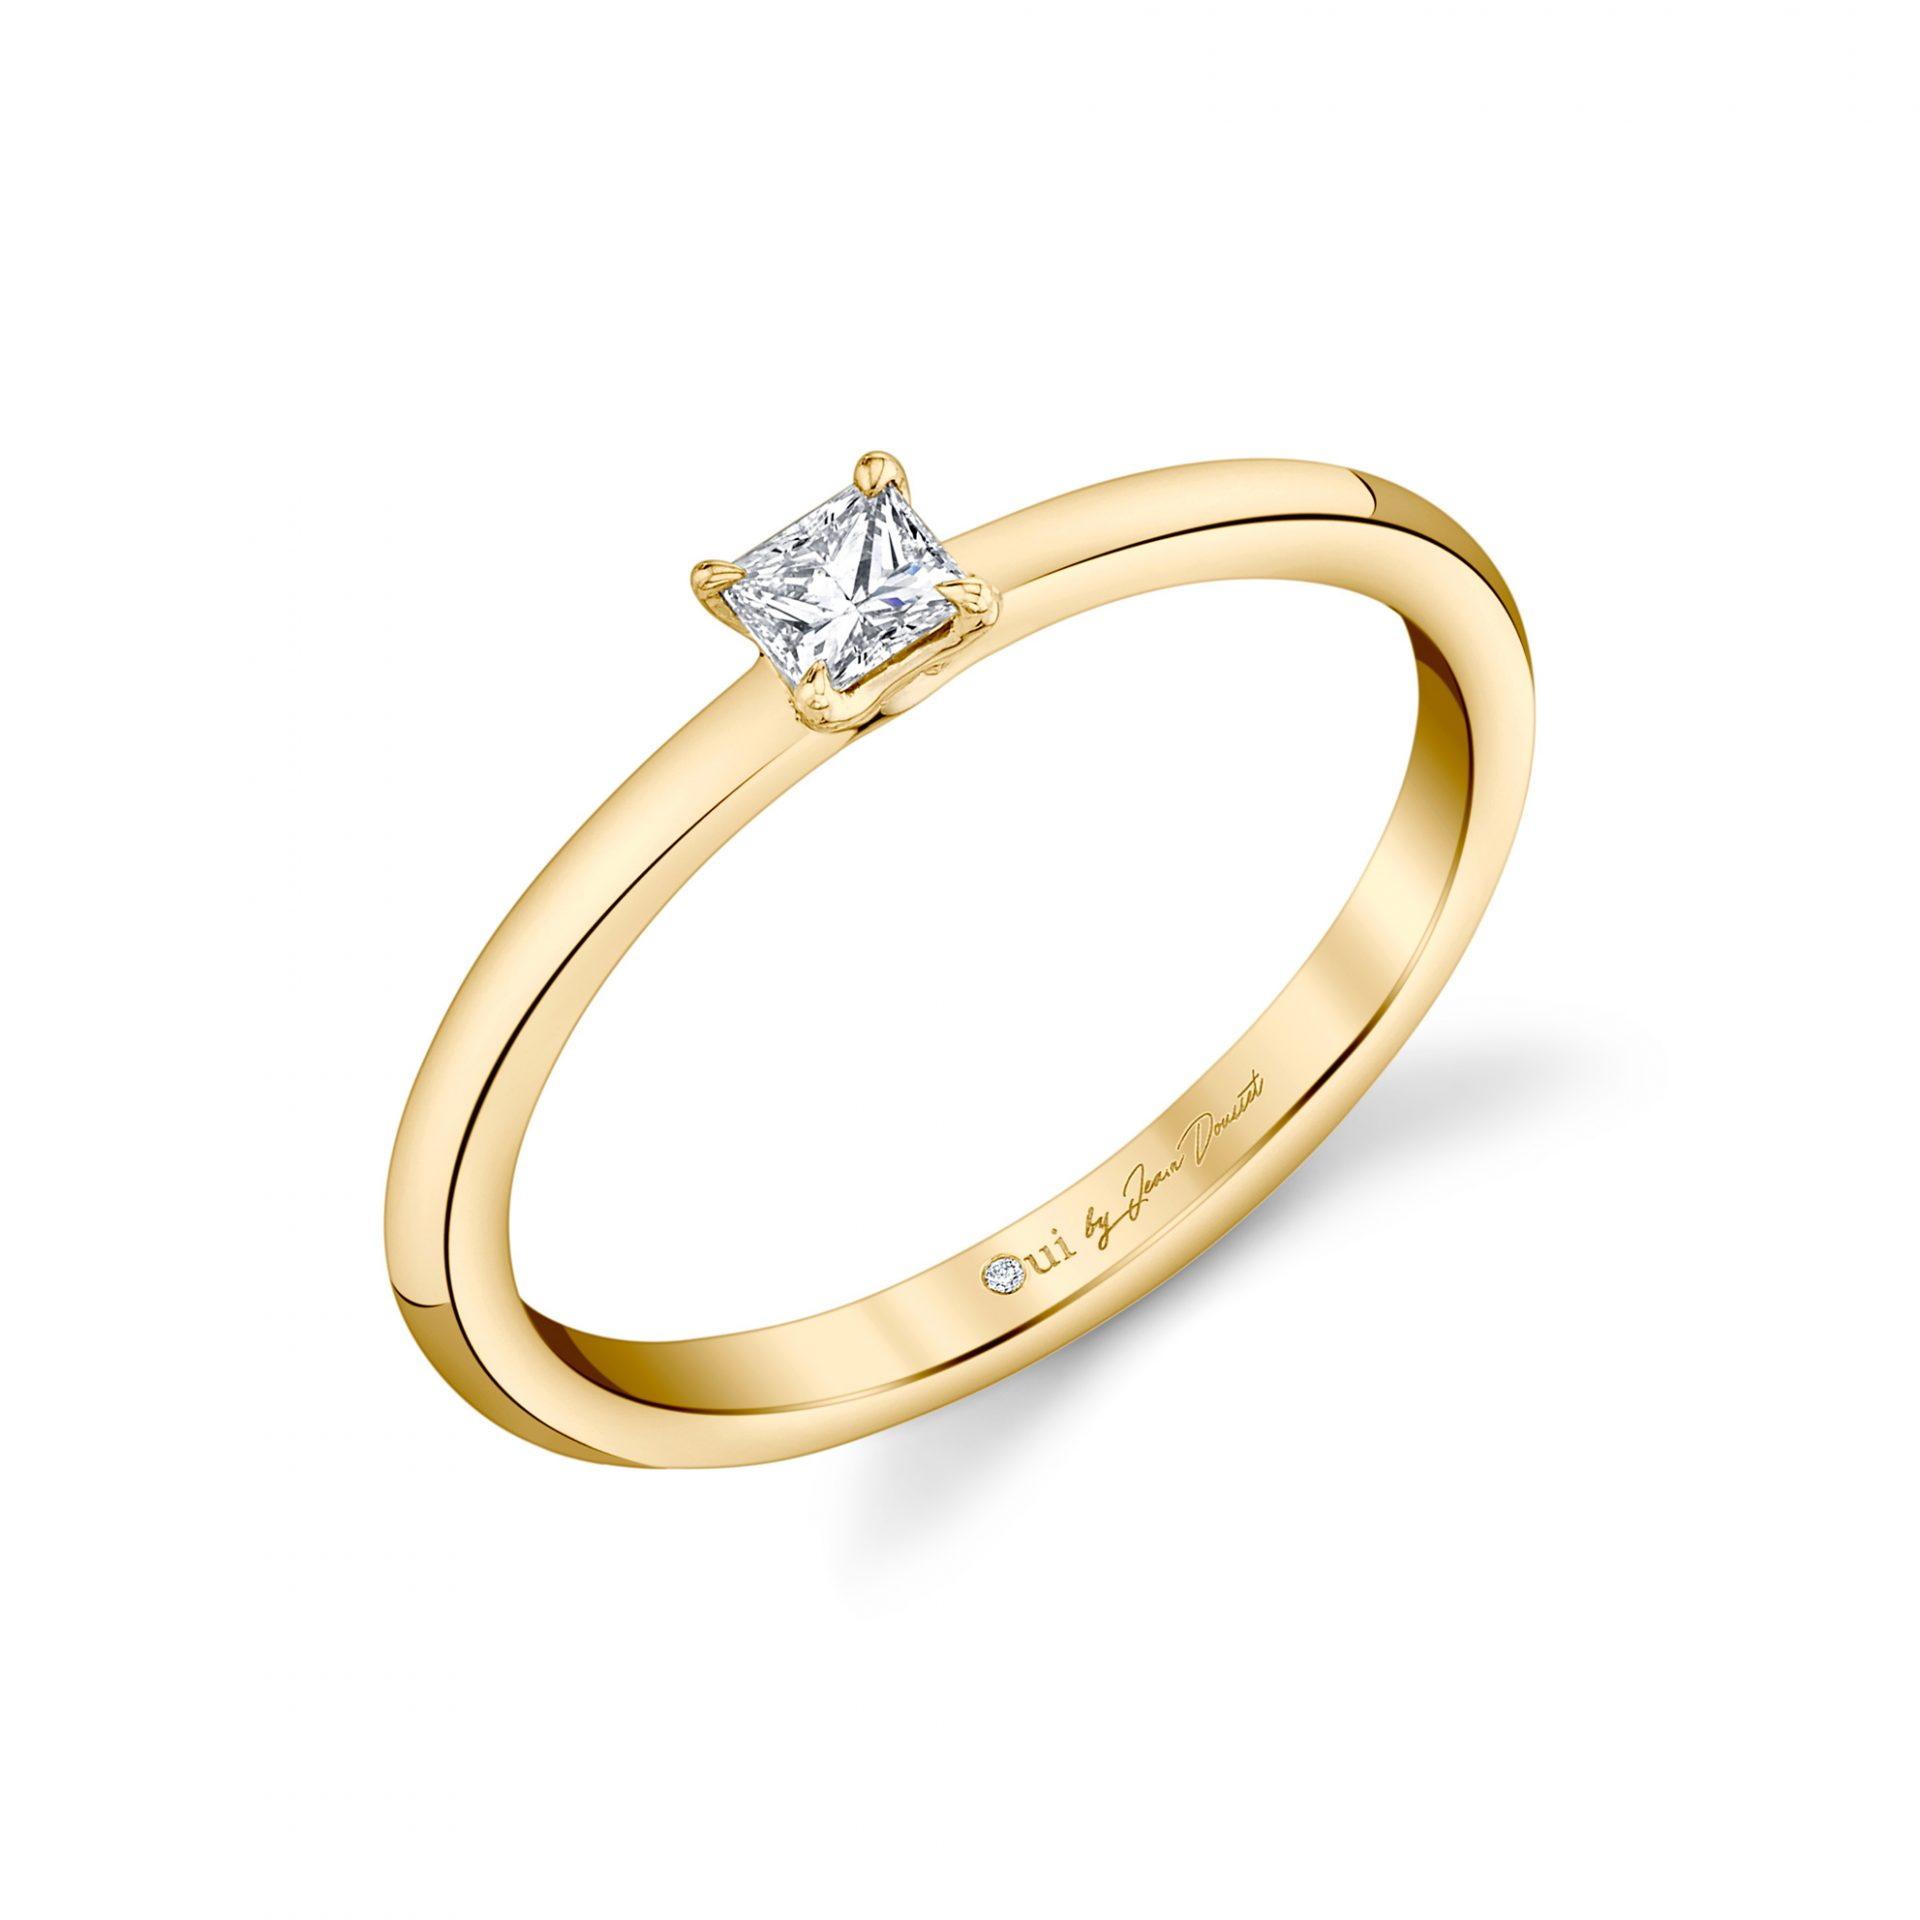 La Petite Princess Diamond Wedding Band in 18k Yellow Gold Standing View by Oui by Jean Dousset